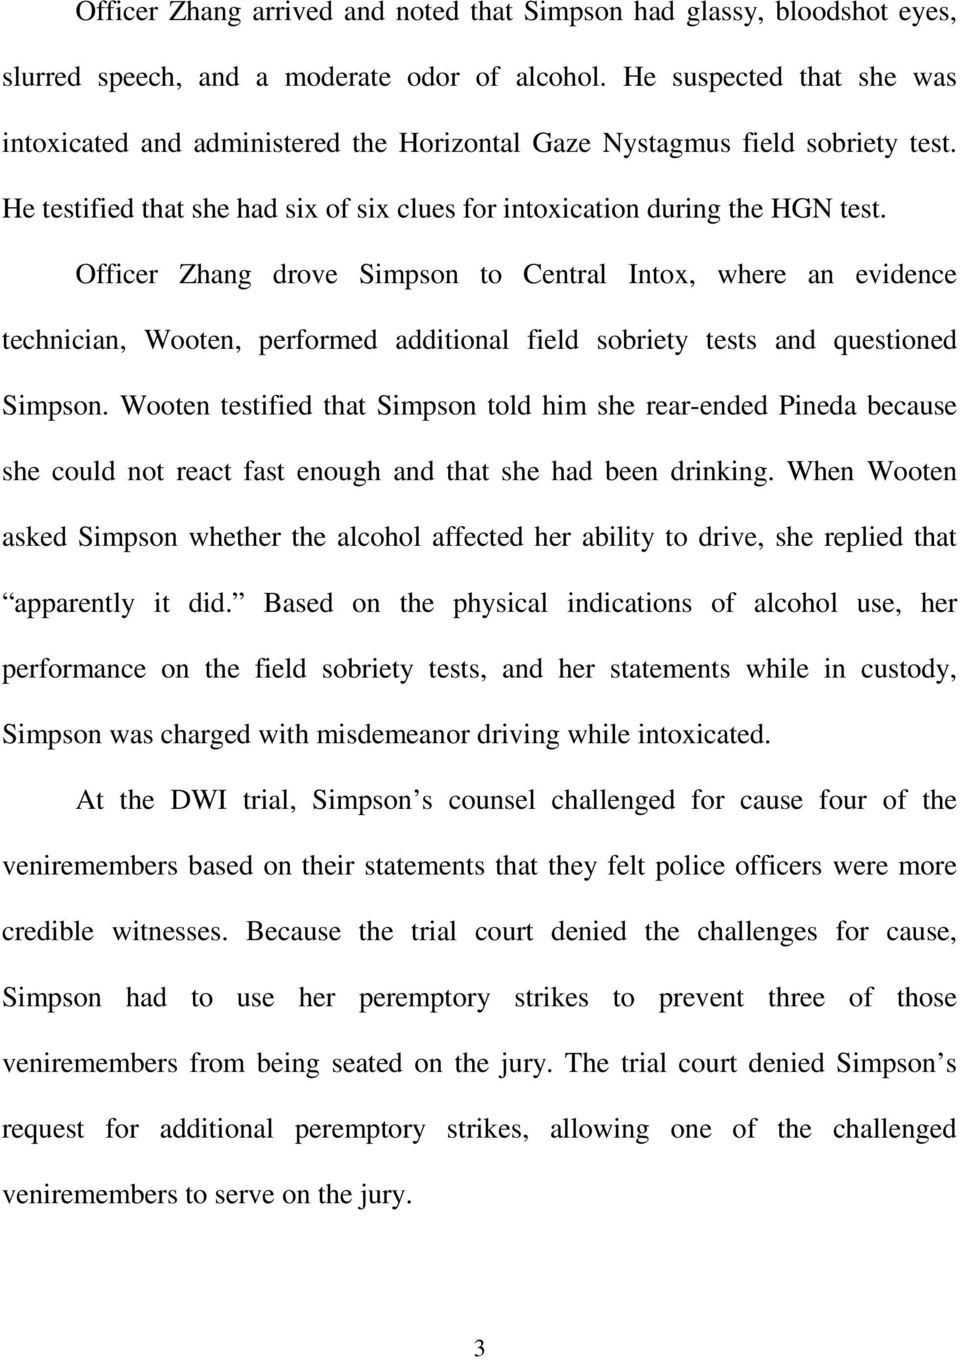 Officer Zhang drove Simpson to Central Intox, where an evidence technician, Wooten, performed additional field sobriety tests and questioned Simpson.